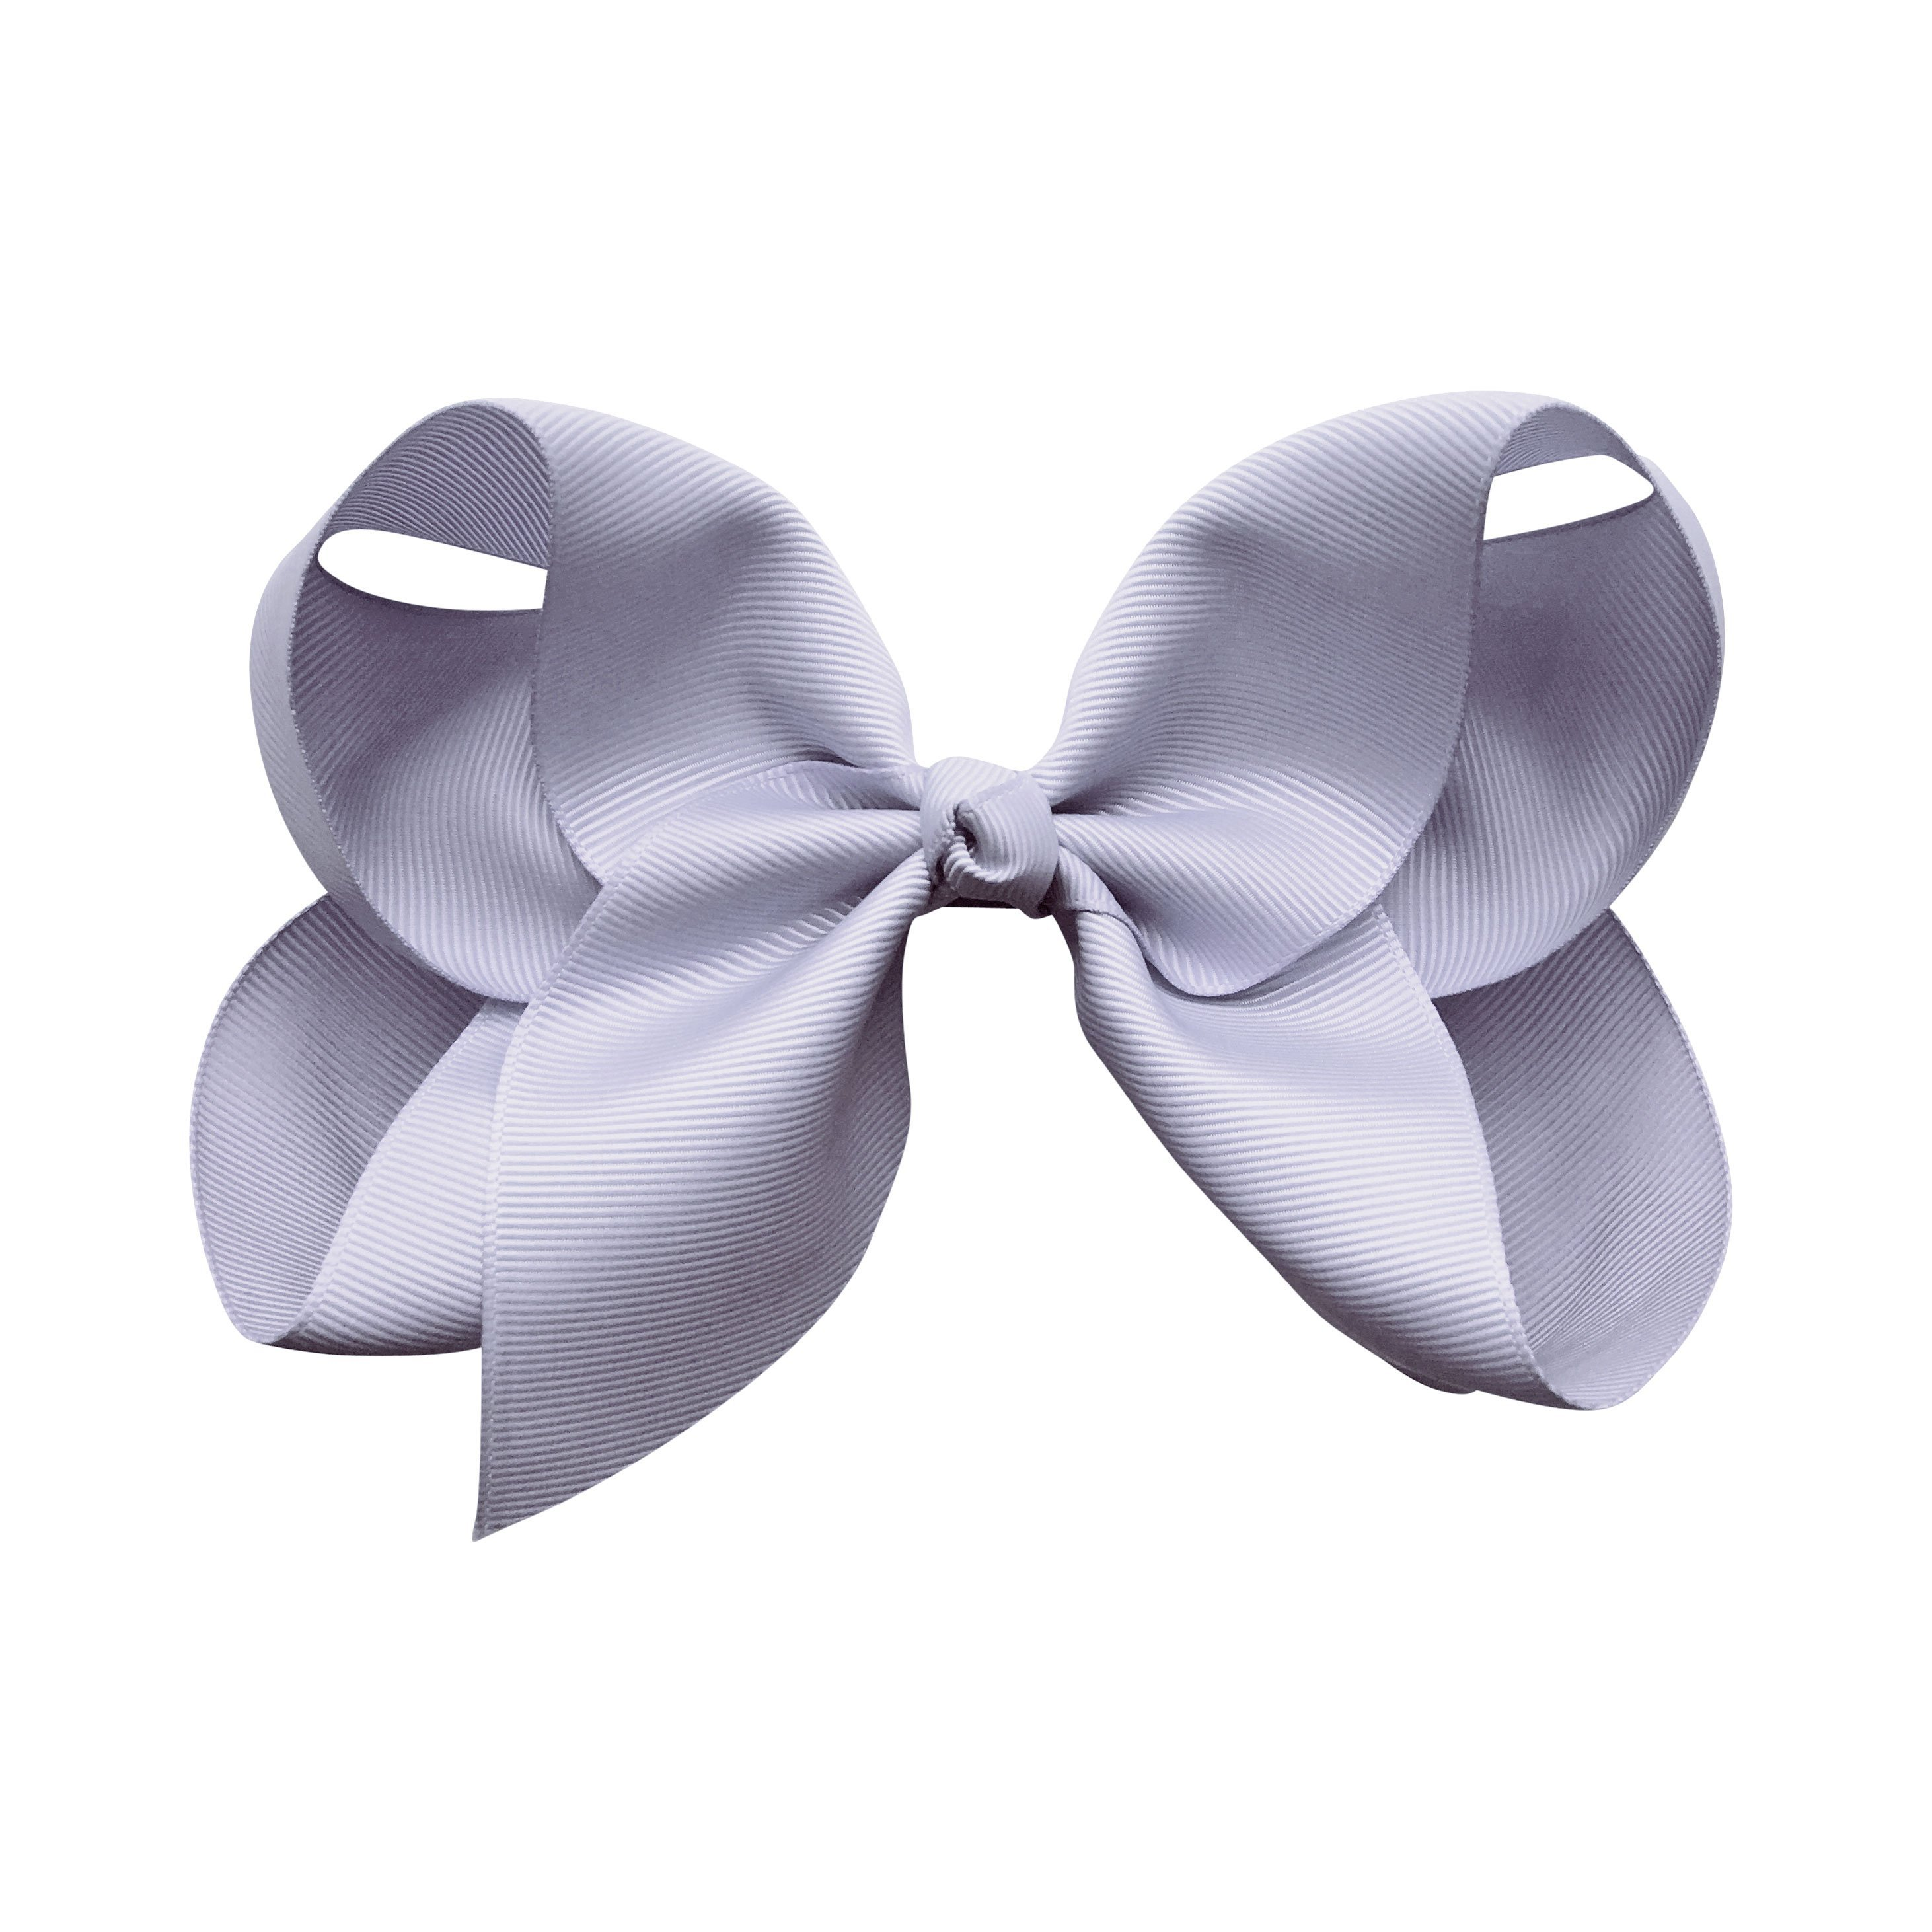 Image of Jumbo Boutique Bow - alligator clip - Thistle